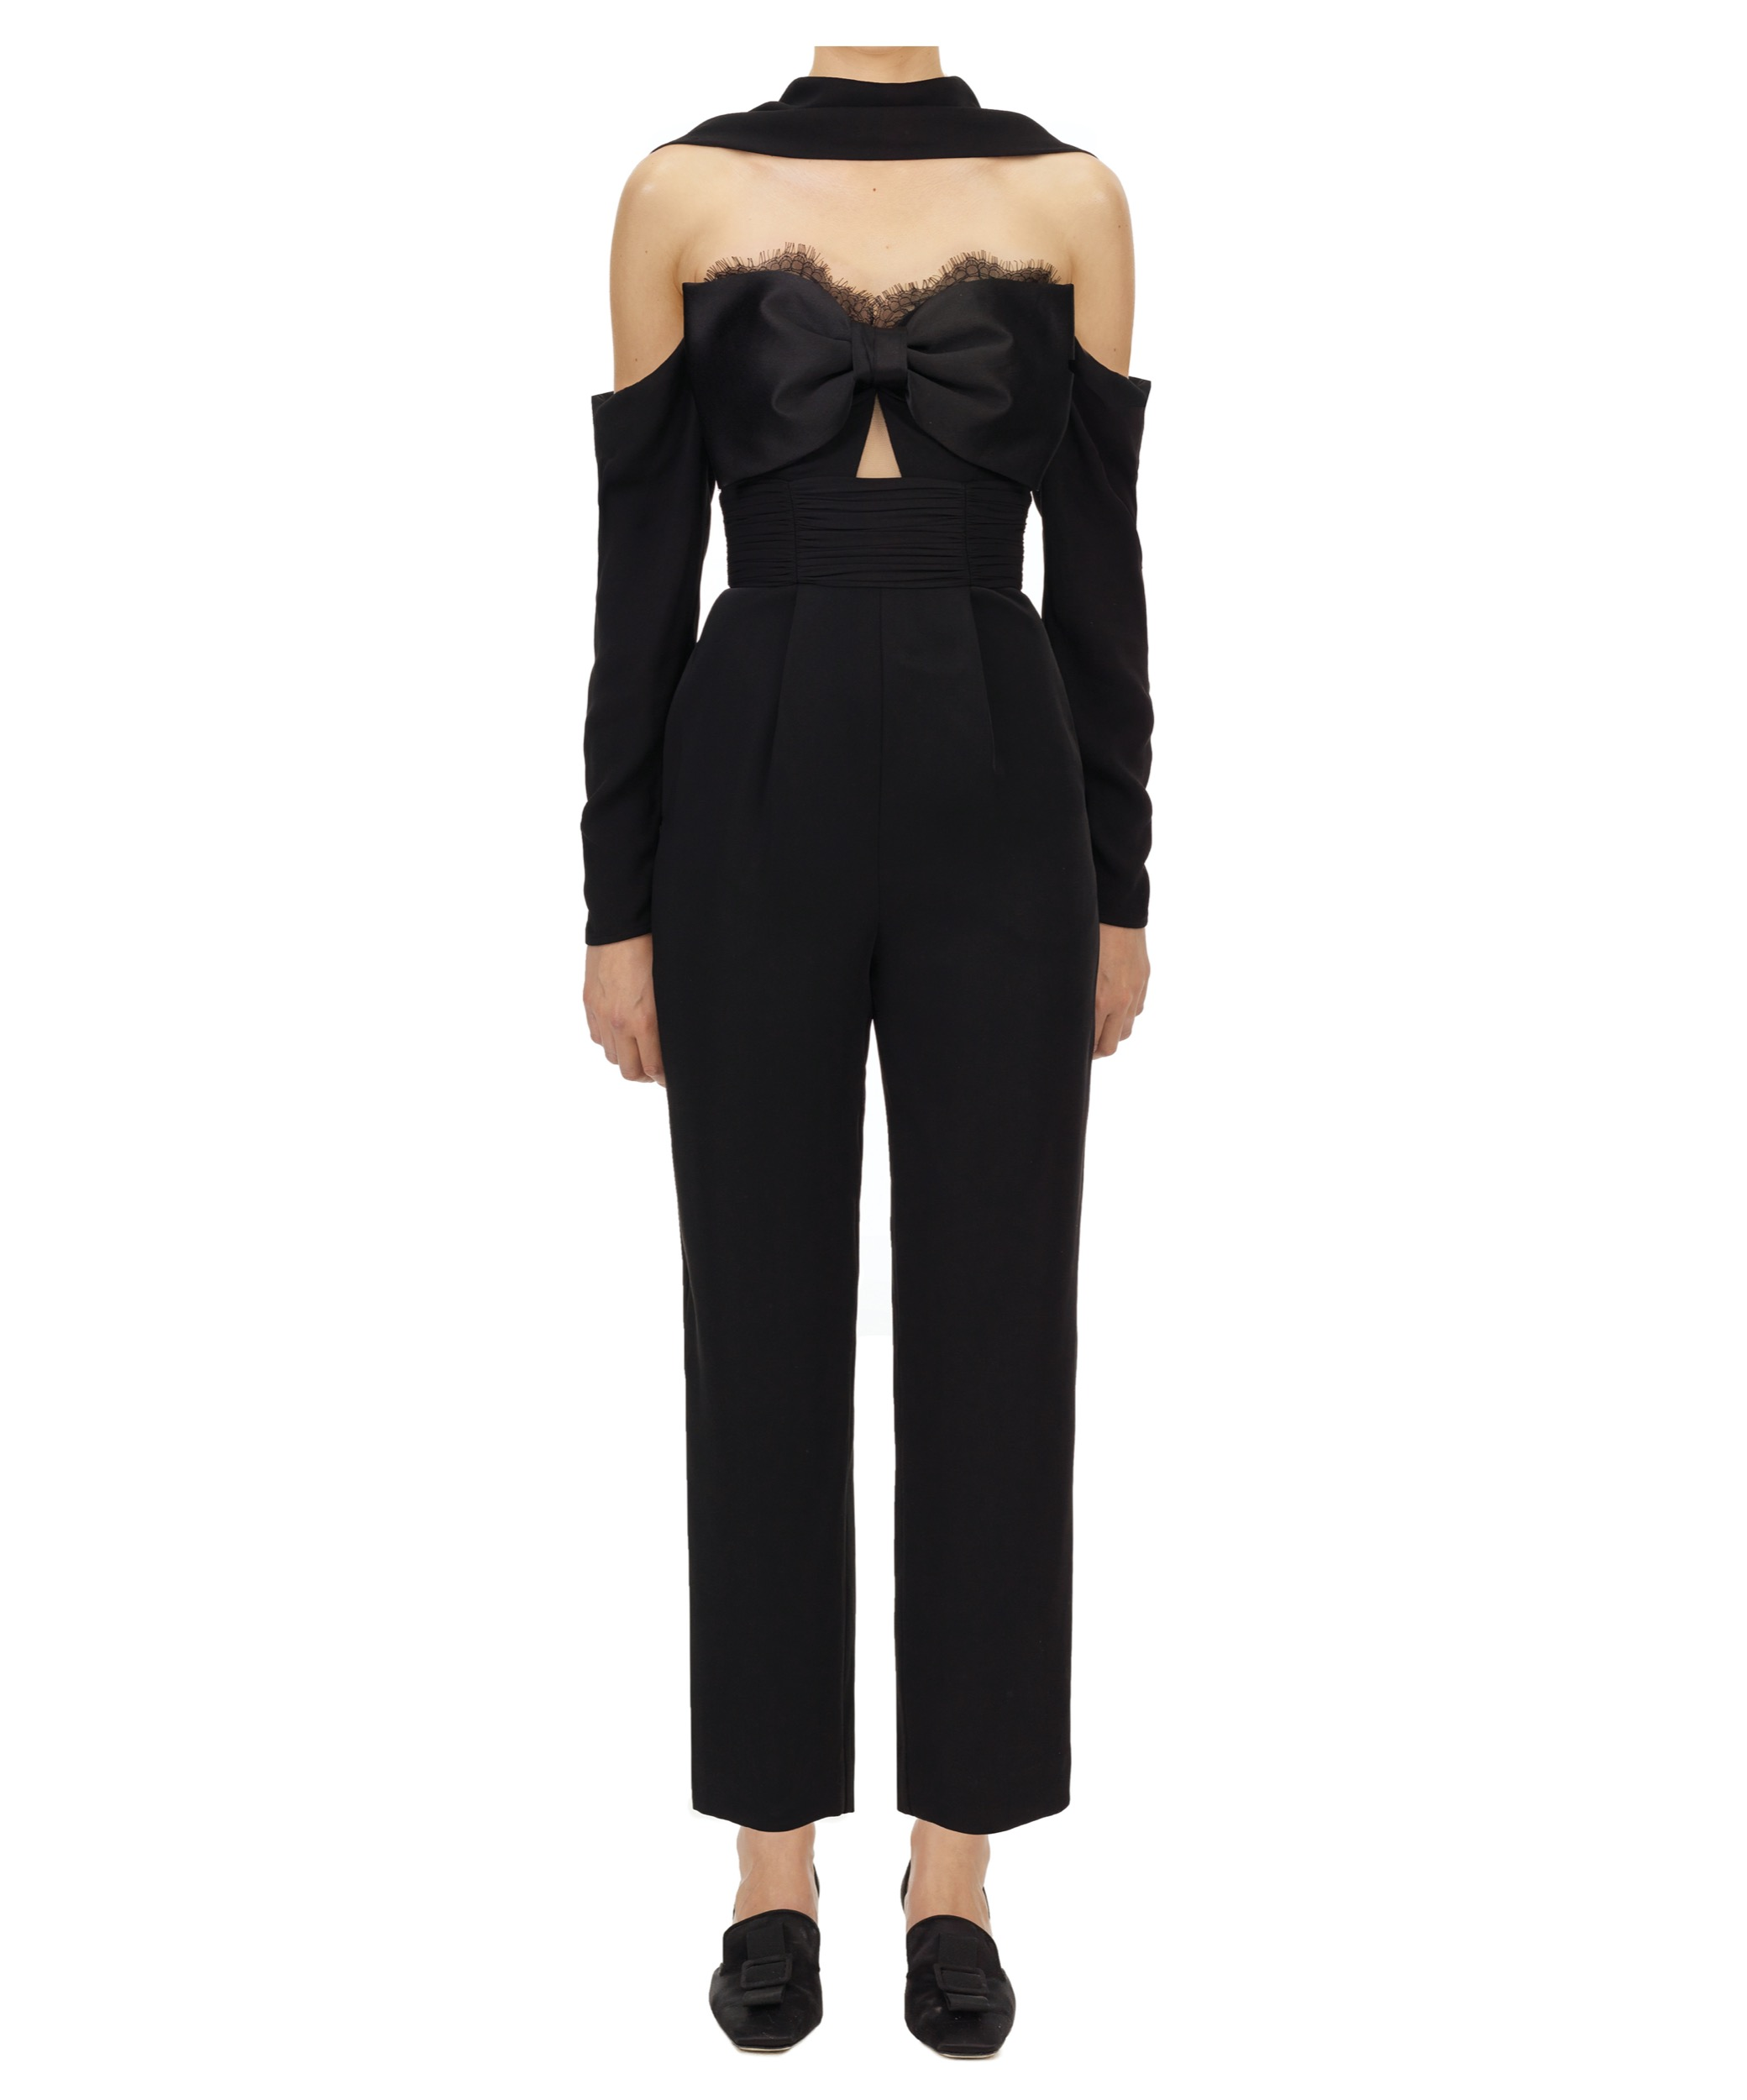 070 TAILORED CREPE BOW JUMPSUIT